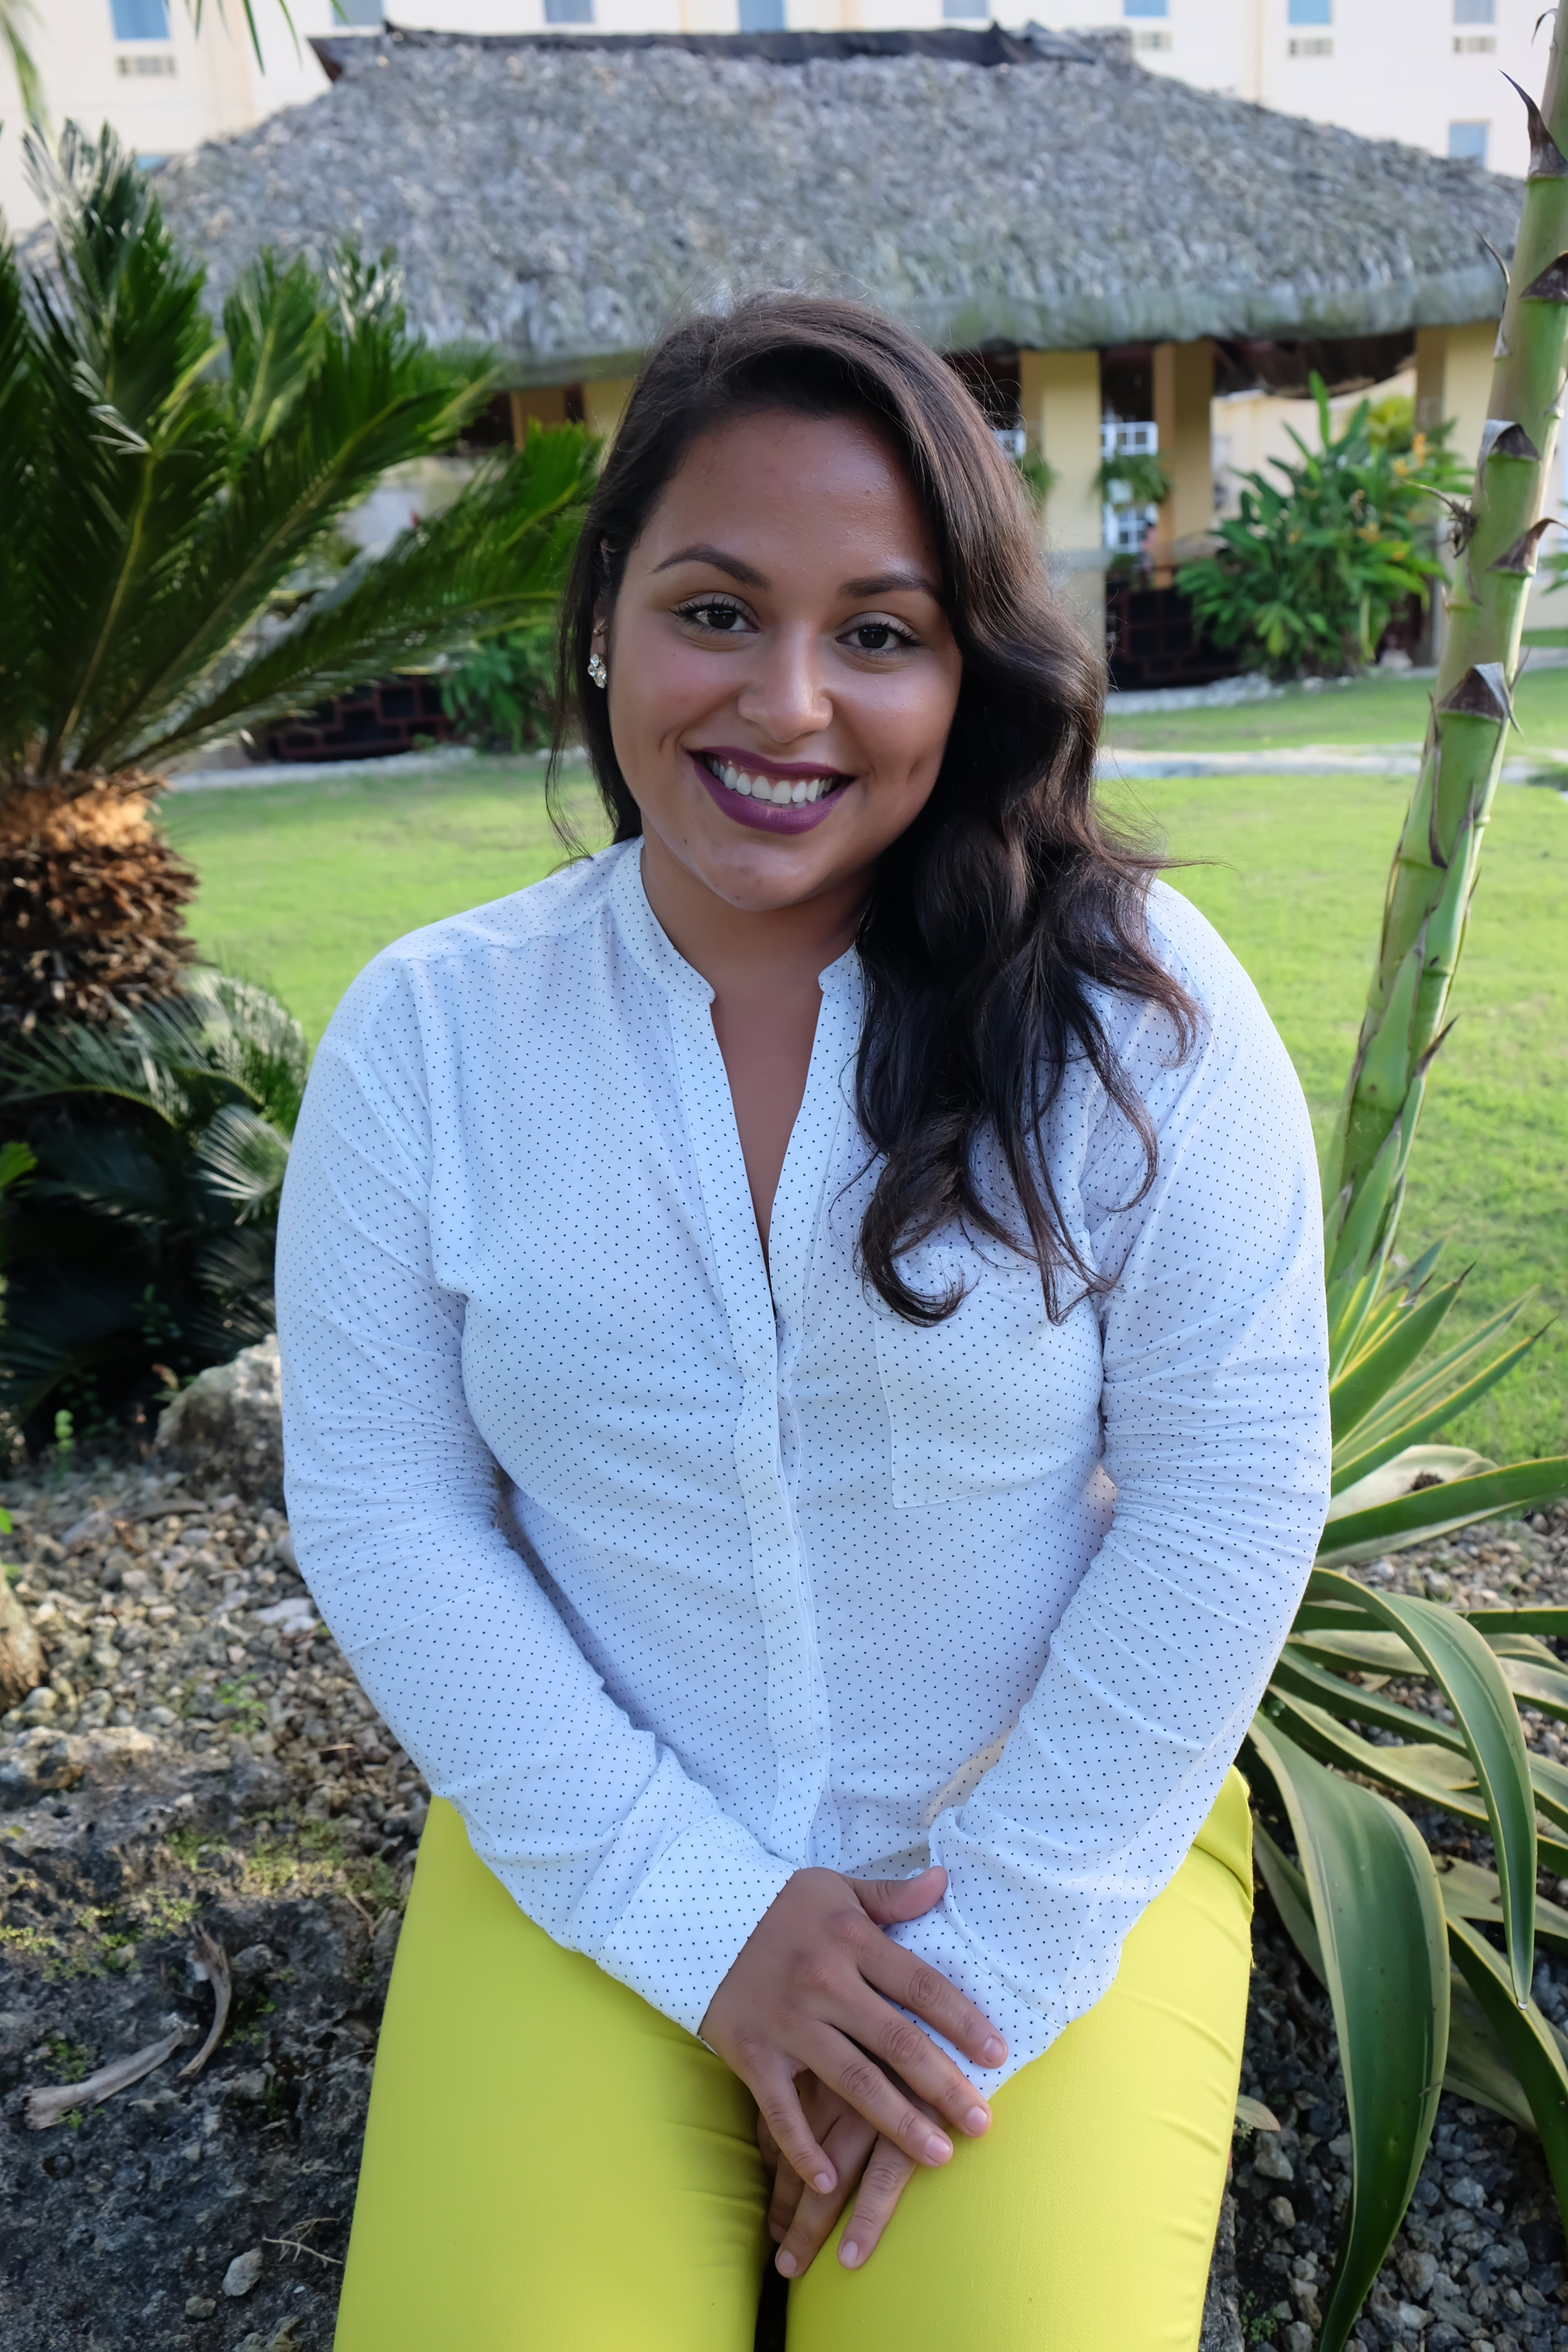 Meet Zaira - Zaira Vicario is a Returned Peace Corps Volunteer who served as a Primary Literacy Promoter in the Dominican Republic from March 2016 through May 2018. She graduated from the University of Michigan with a degree in Women's Studies. Driven by education, wellness, and beauty, she takes pride in giving back to her community and making memorable moments with her family and friends. You can find her on LinkedIn and Instagram.